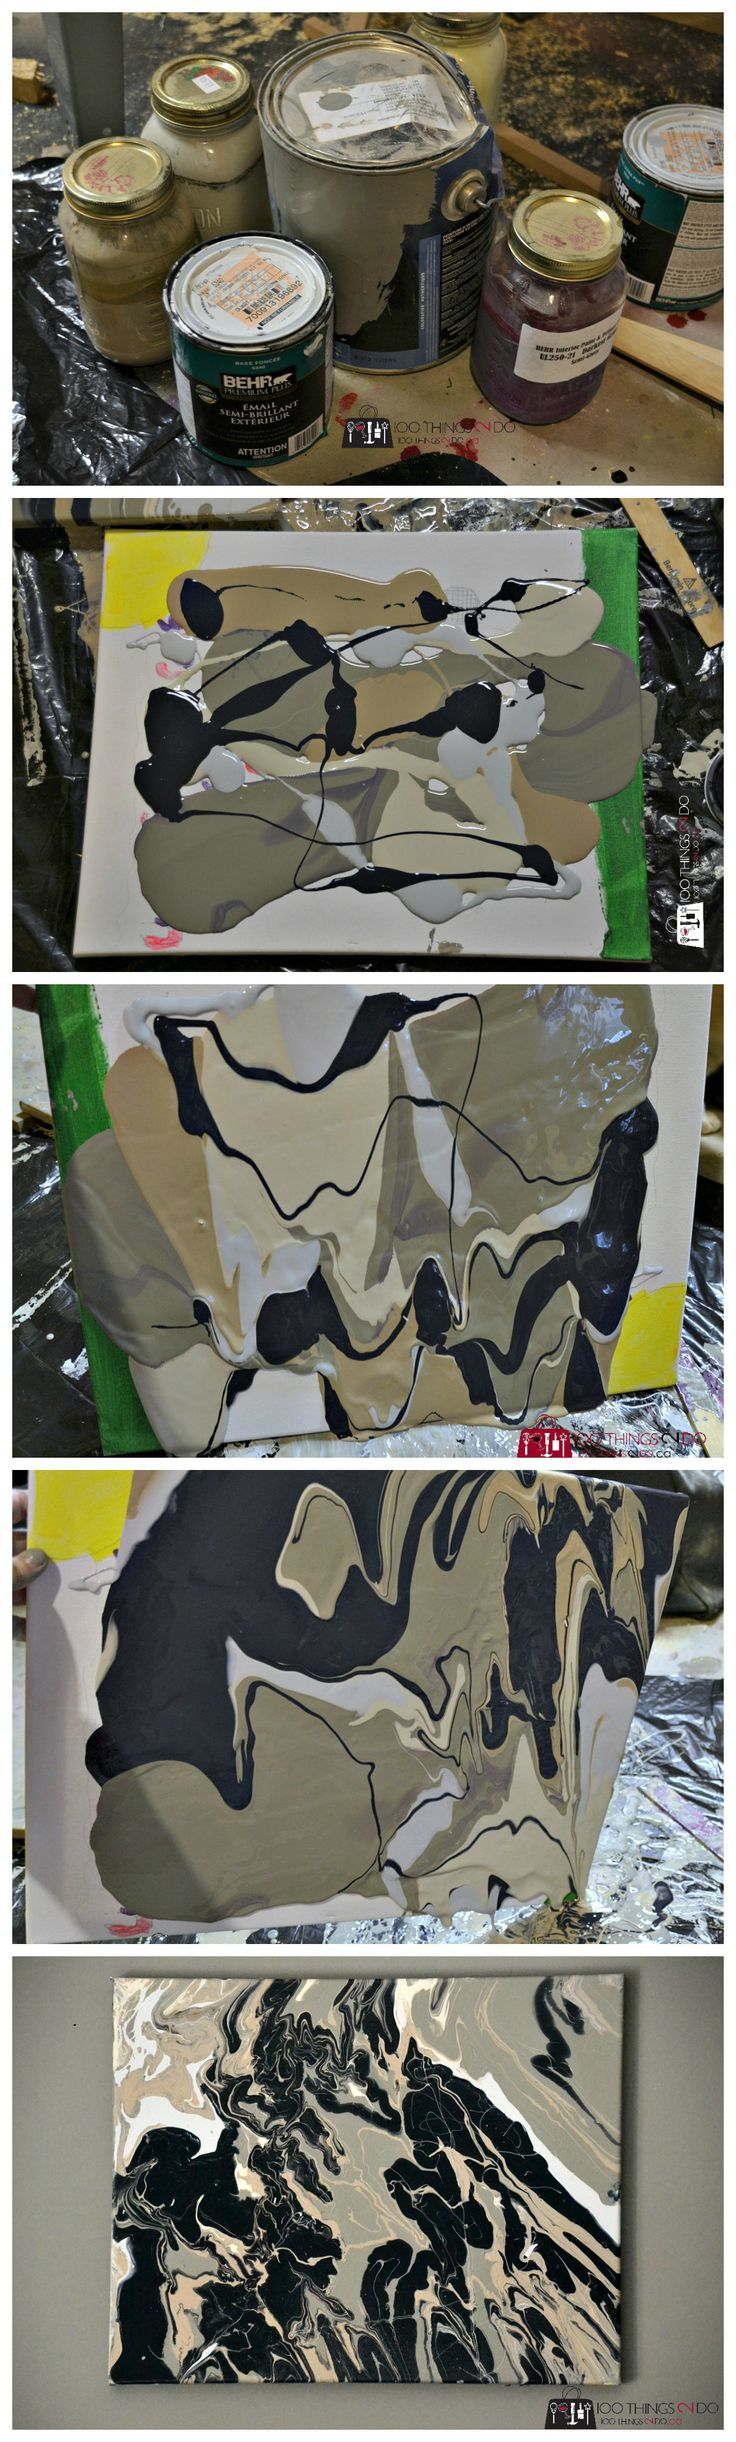 Create your own abstract art using leftover paints and canvas - beautiful, easy and inexpensive